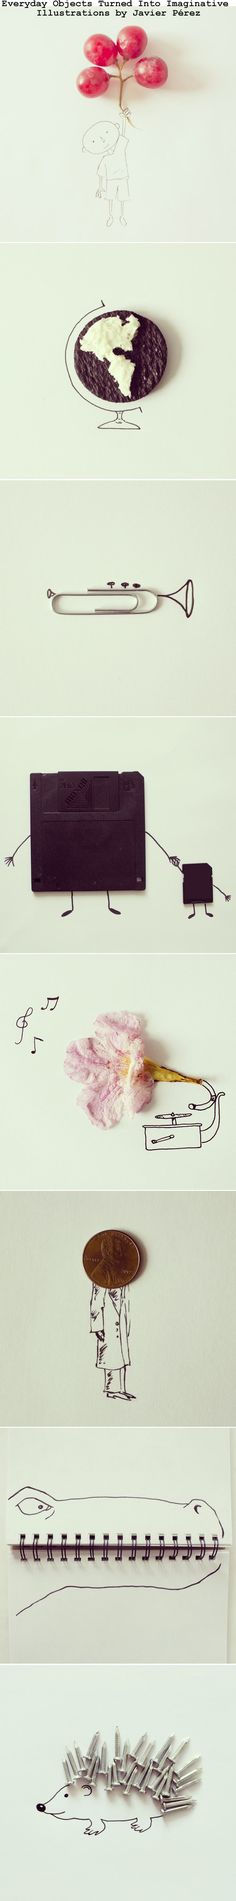 Everyday Objects Turned Into Imaginative Illustrations by Javier Pérez.